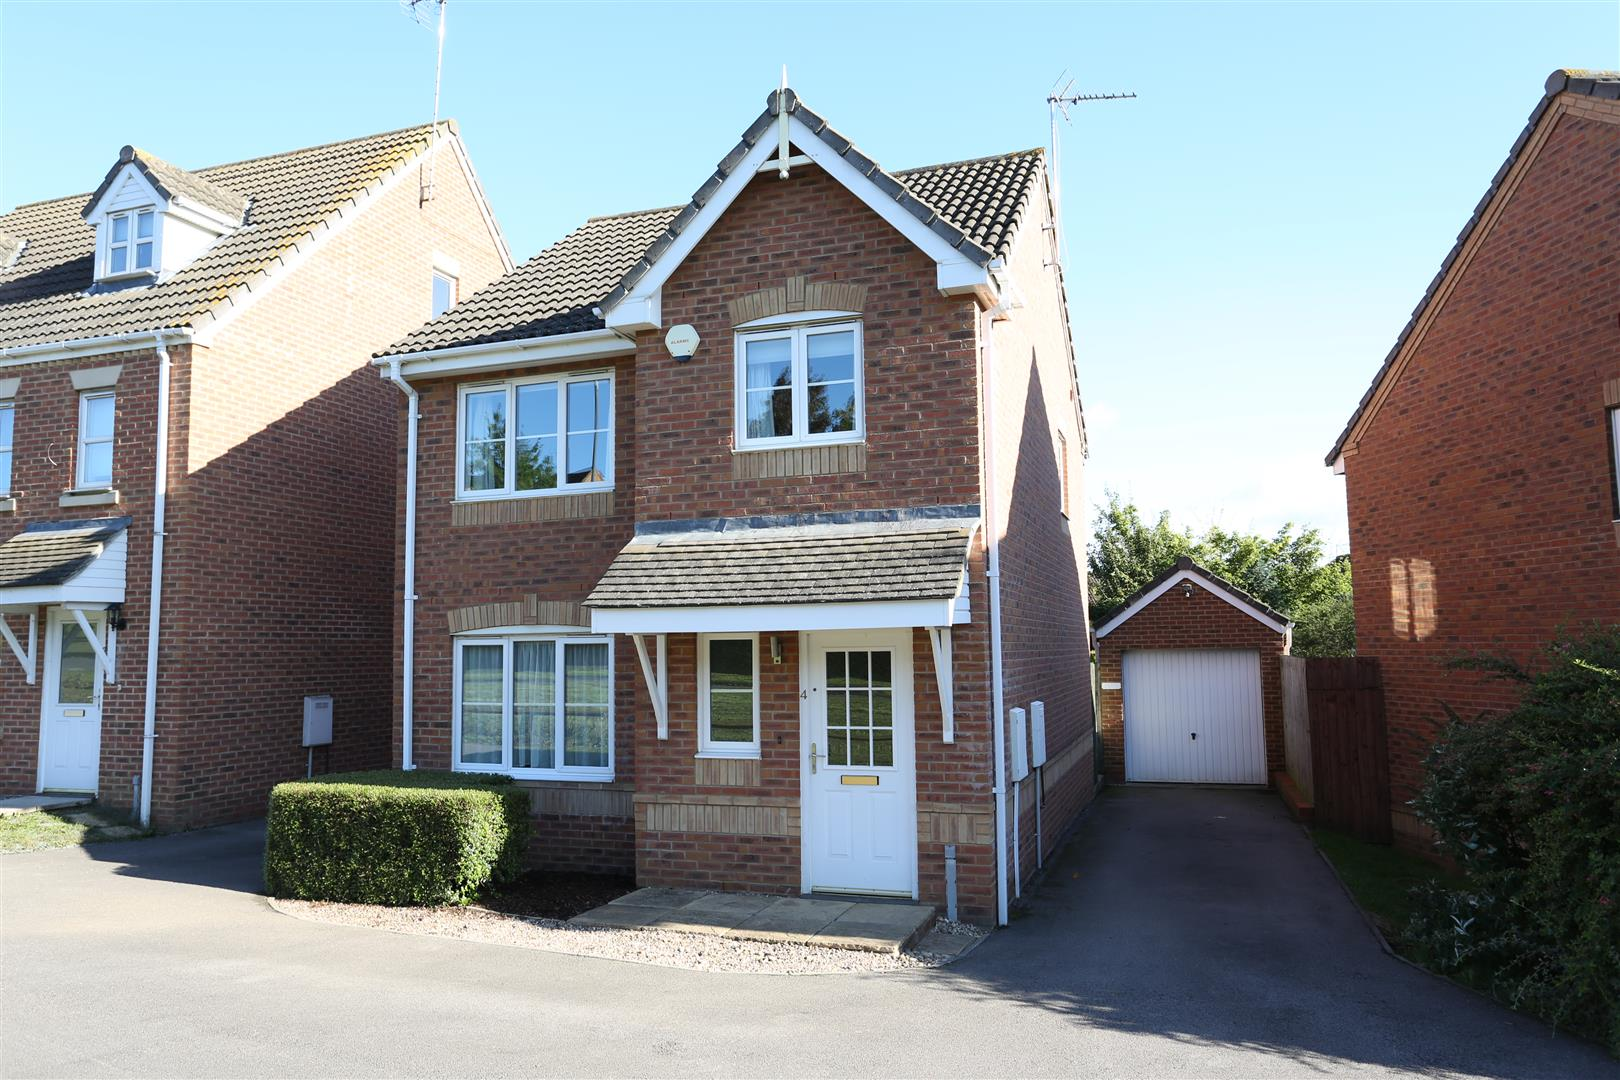 3 Bedrooms Detached House for sale in Dance Way, Wellingborough